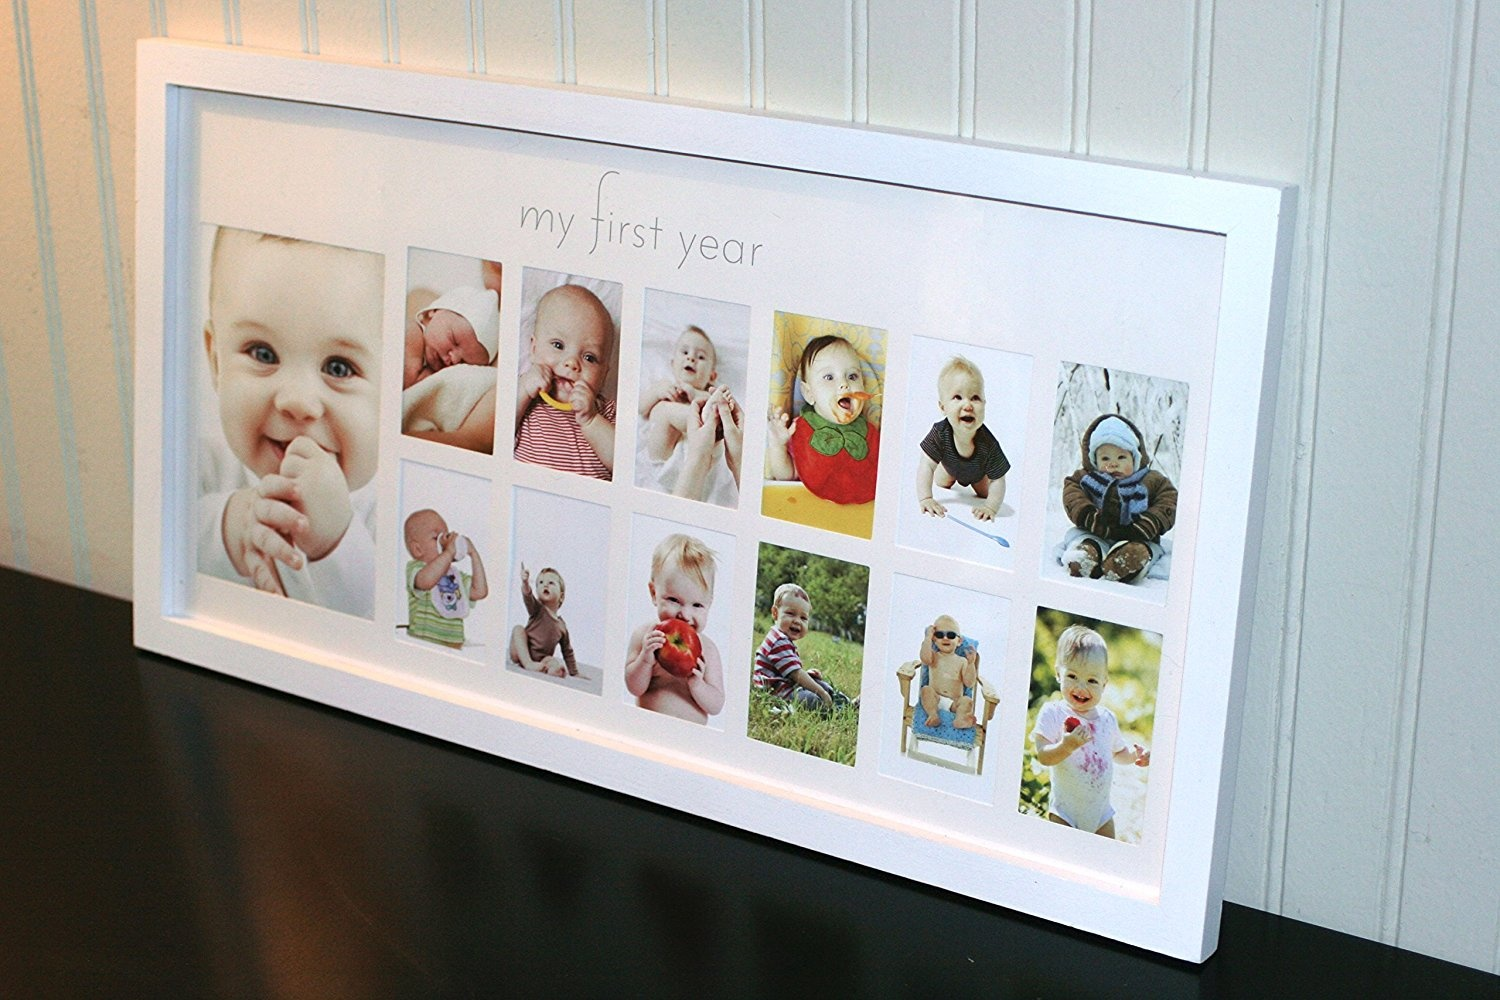 My First Year Photo Frame Baby Baby: Buy Online from Fishpond.com.au